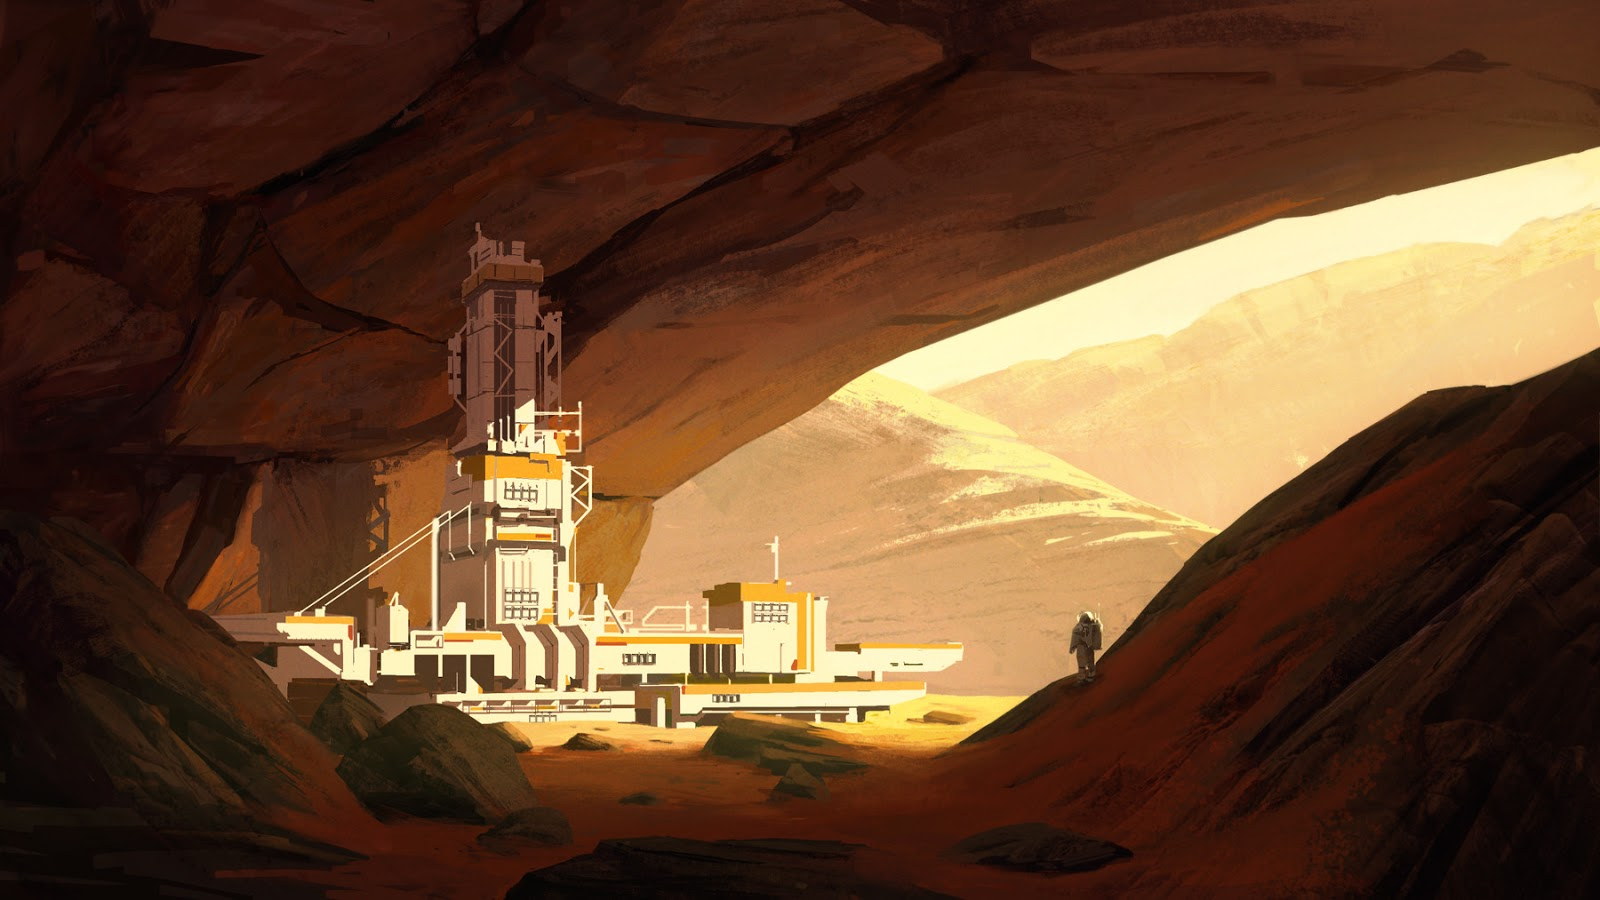 Human base in Martian cave by Natalia Babiy